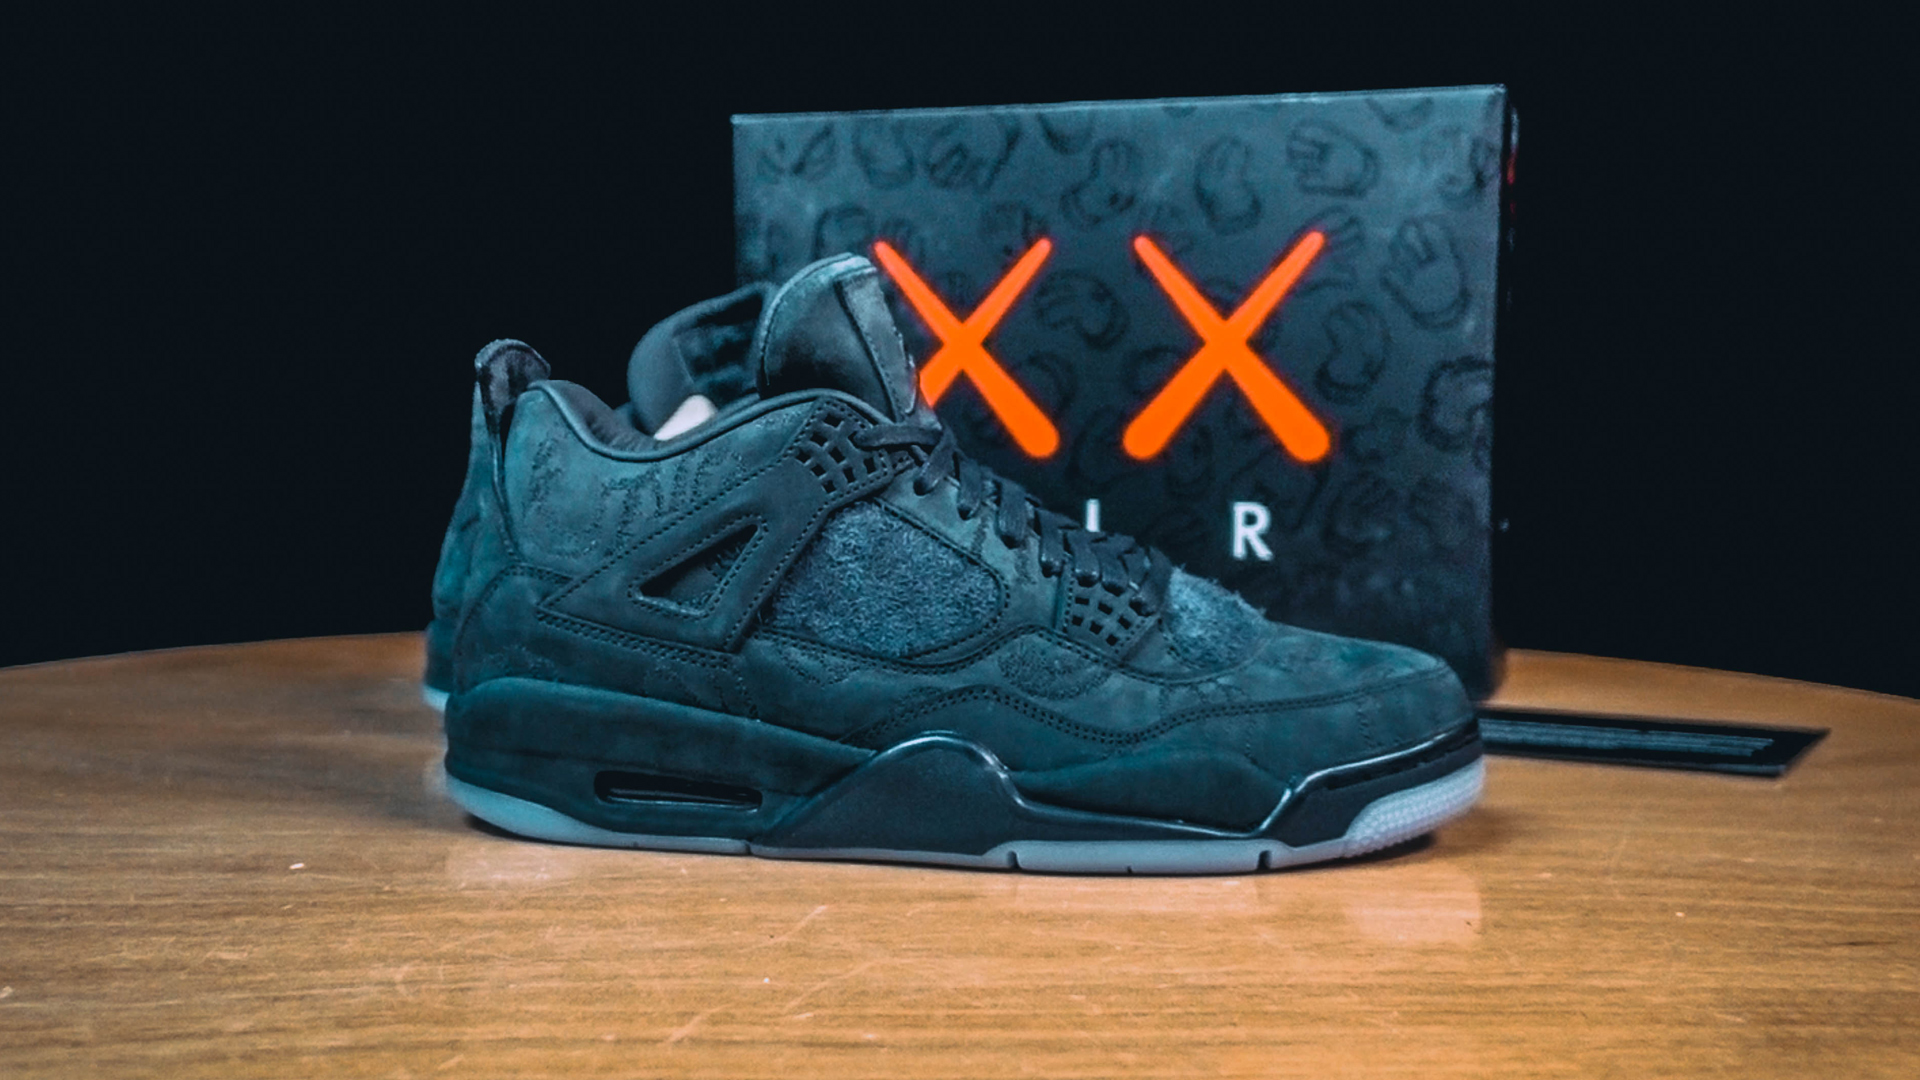 c40de96f5f2 How to Purchase the 'Black' Kaws x Air Jordan 4 930155-001 | Sole Collector